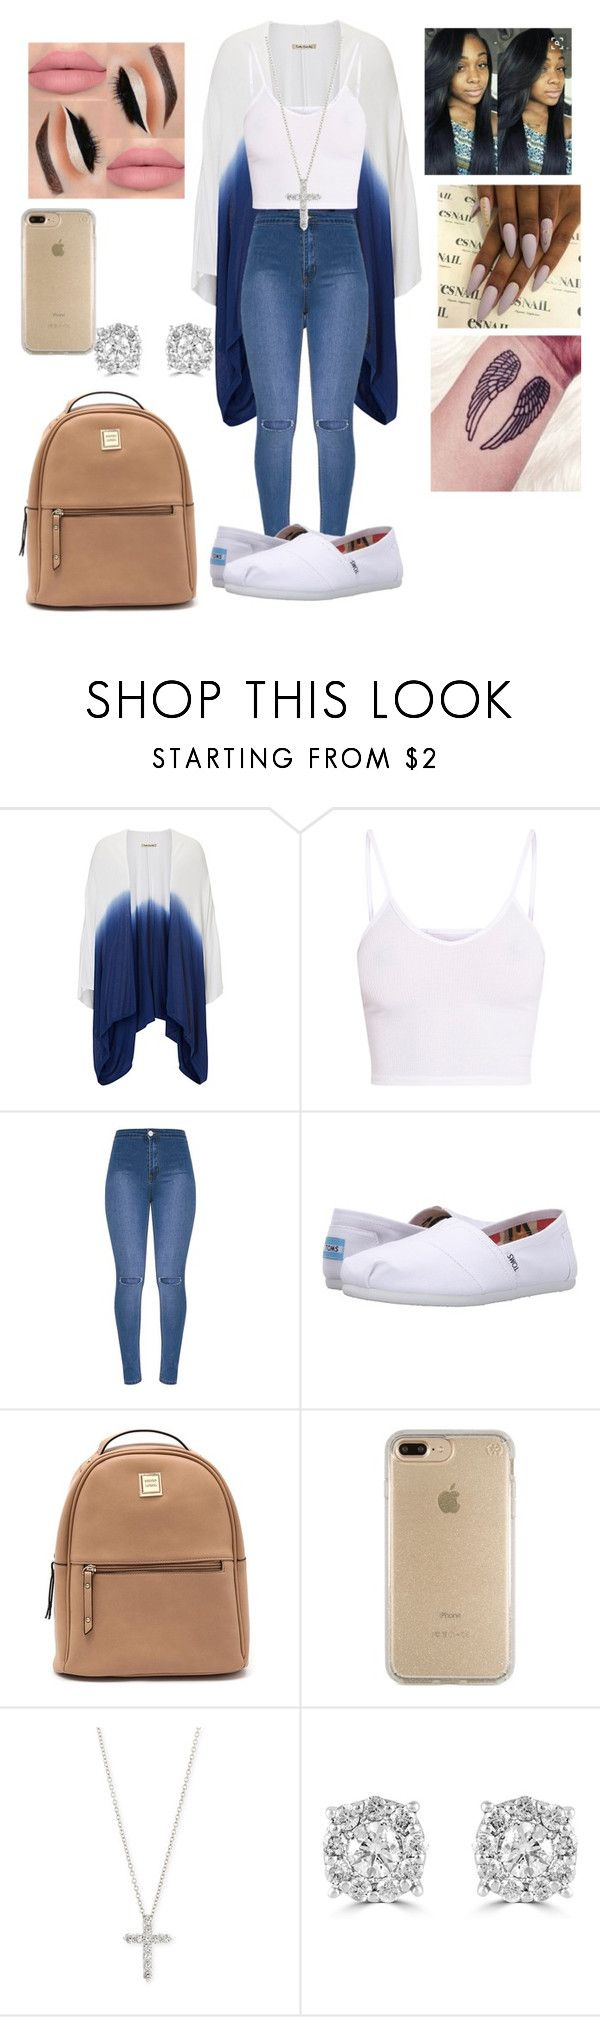 """""""simple an sexy💯👅"""" by babymommaswag ❤ liked on Polyvore featuring Betty Barclay, BasicGrey, TOMS, Speck, Fantasia by DeSerio and Effy Jewelry"""